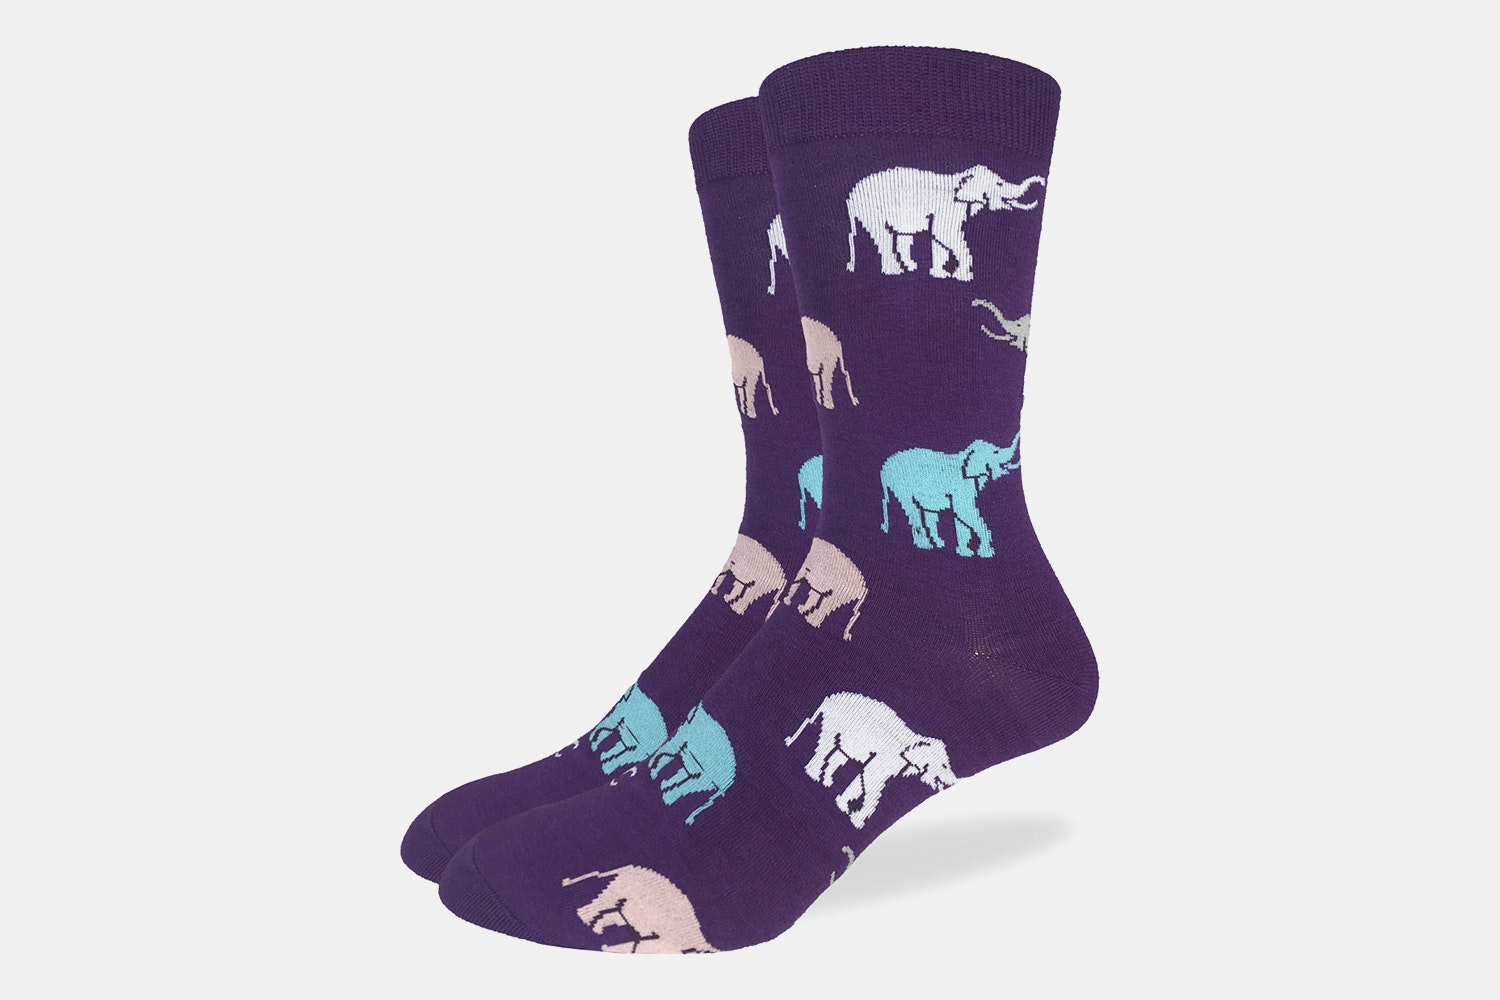 Elephants Crew Socks